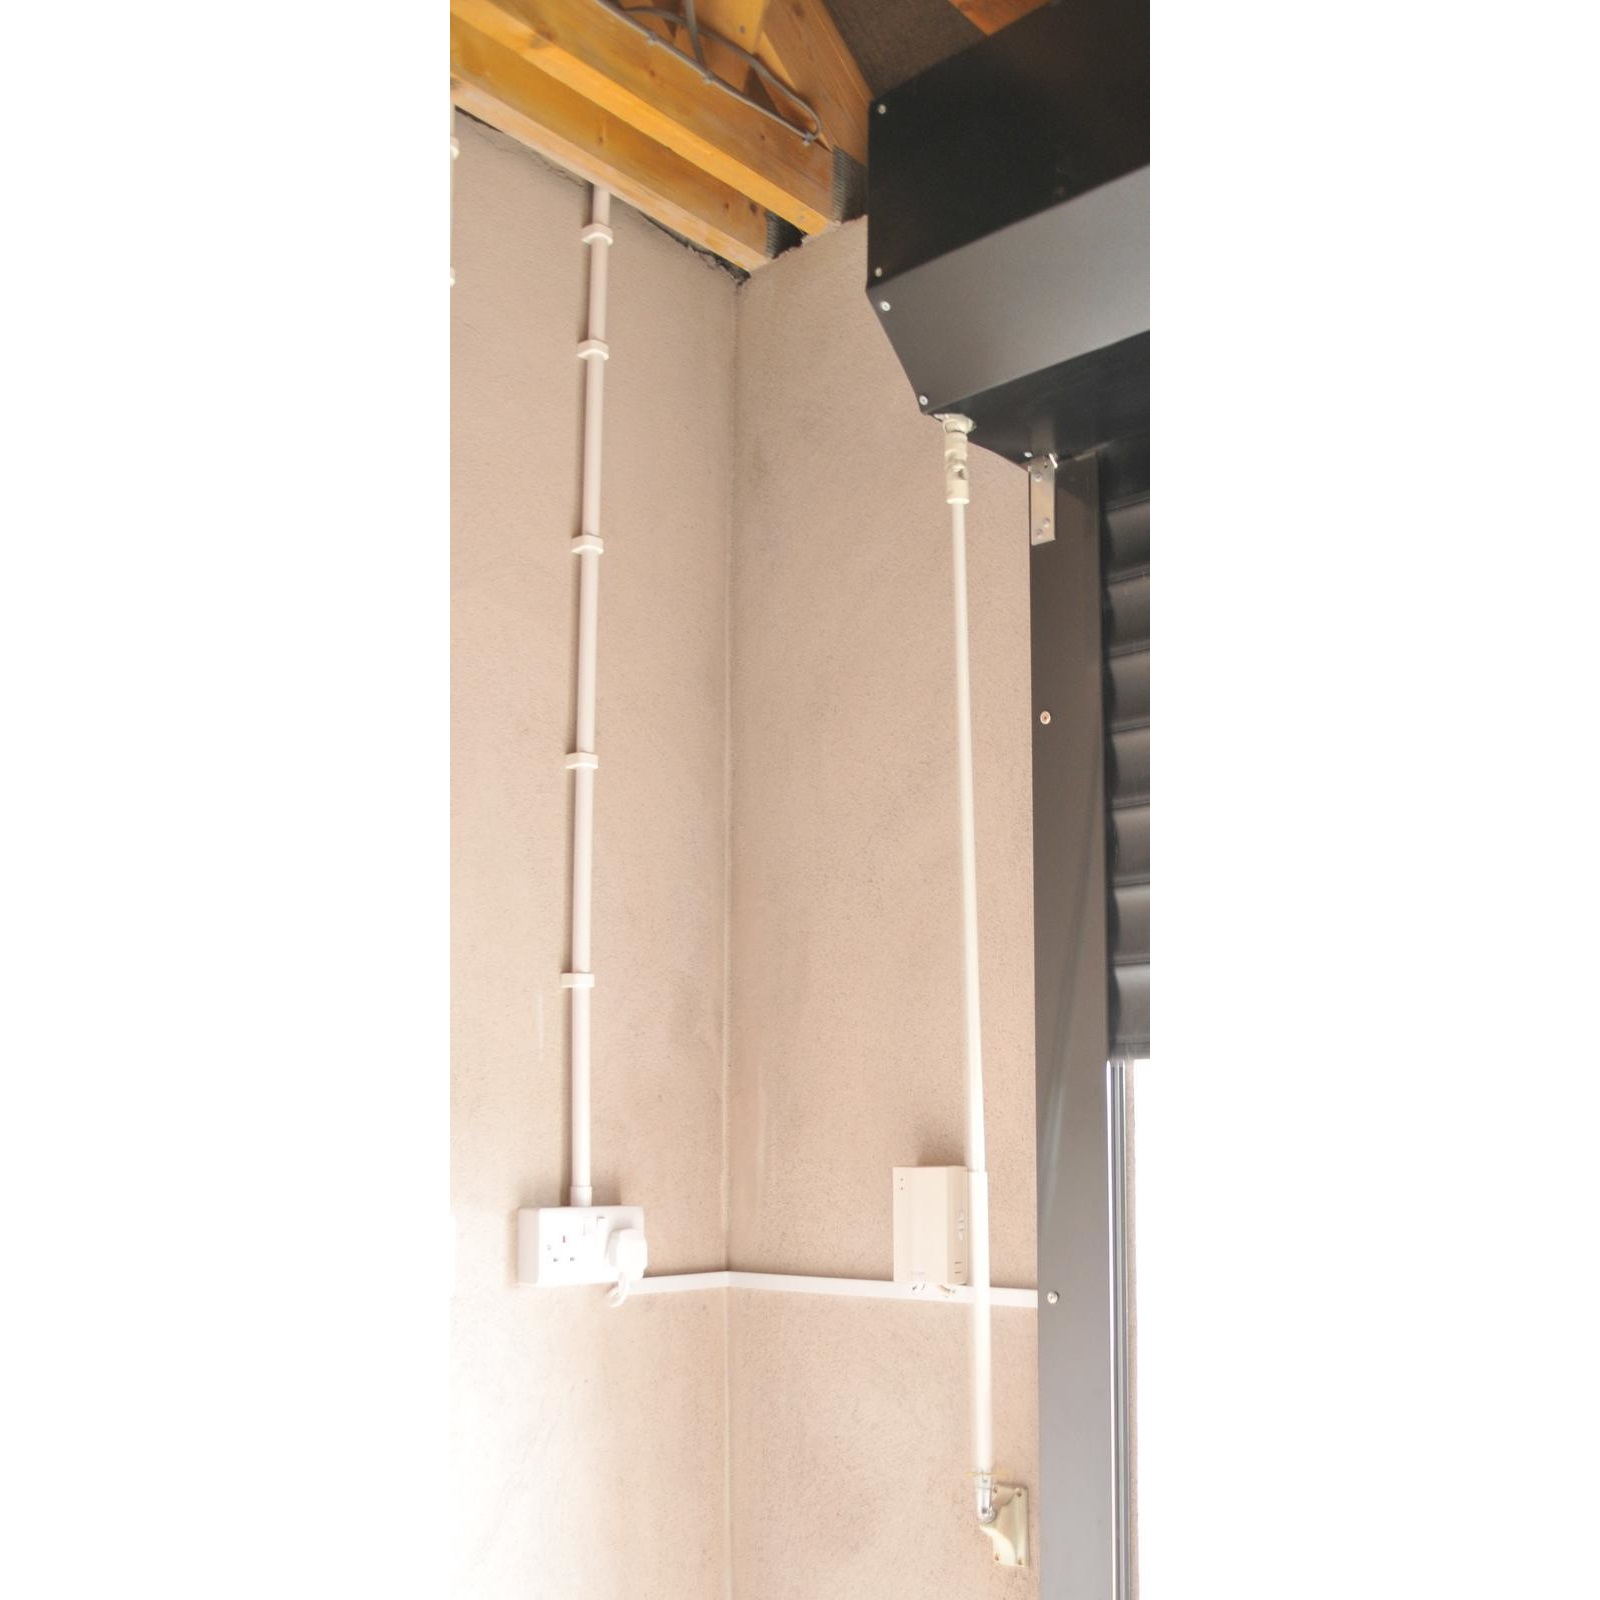 Canopy Option with Insulated Roller Door